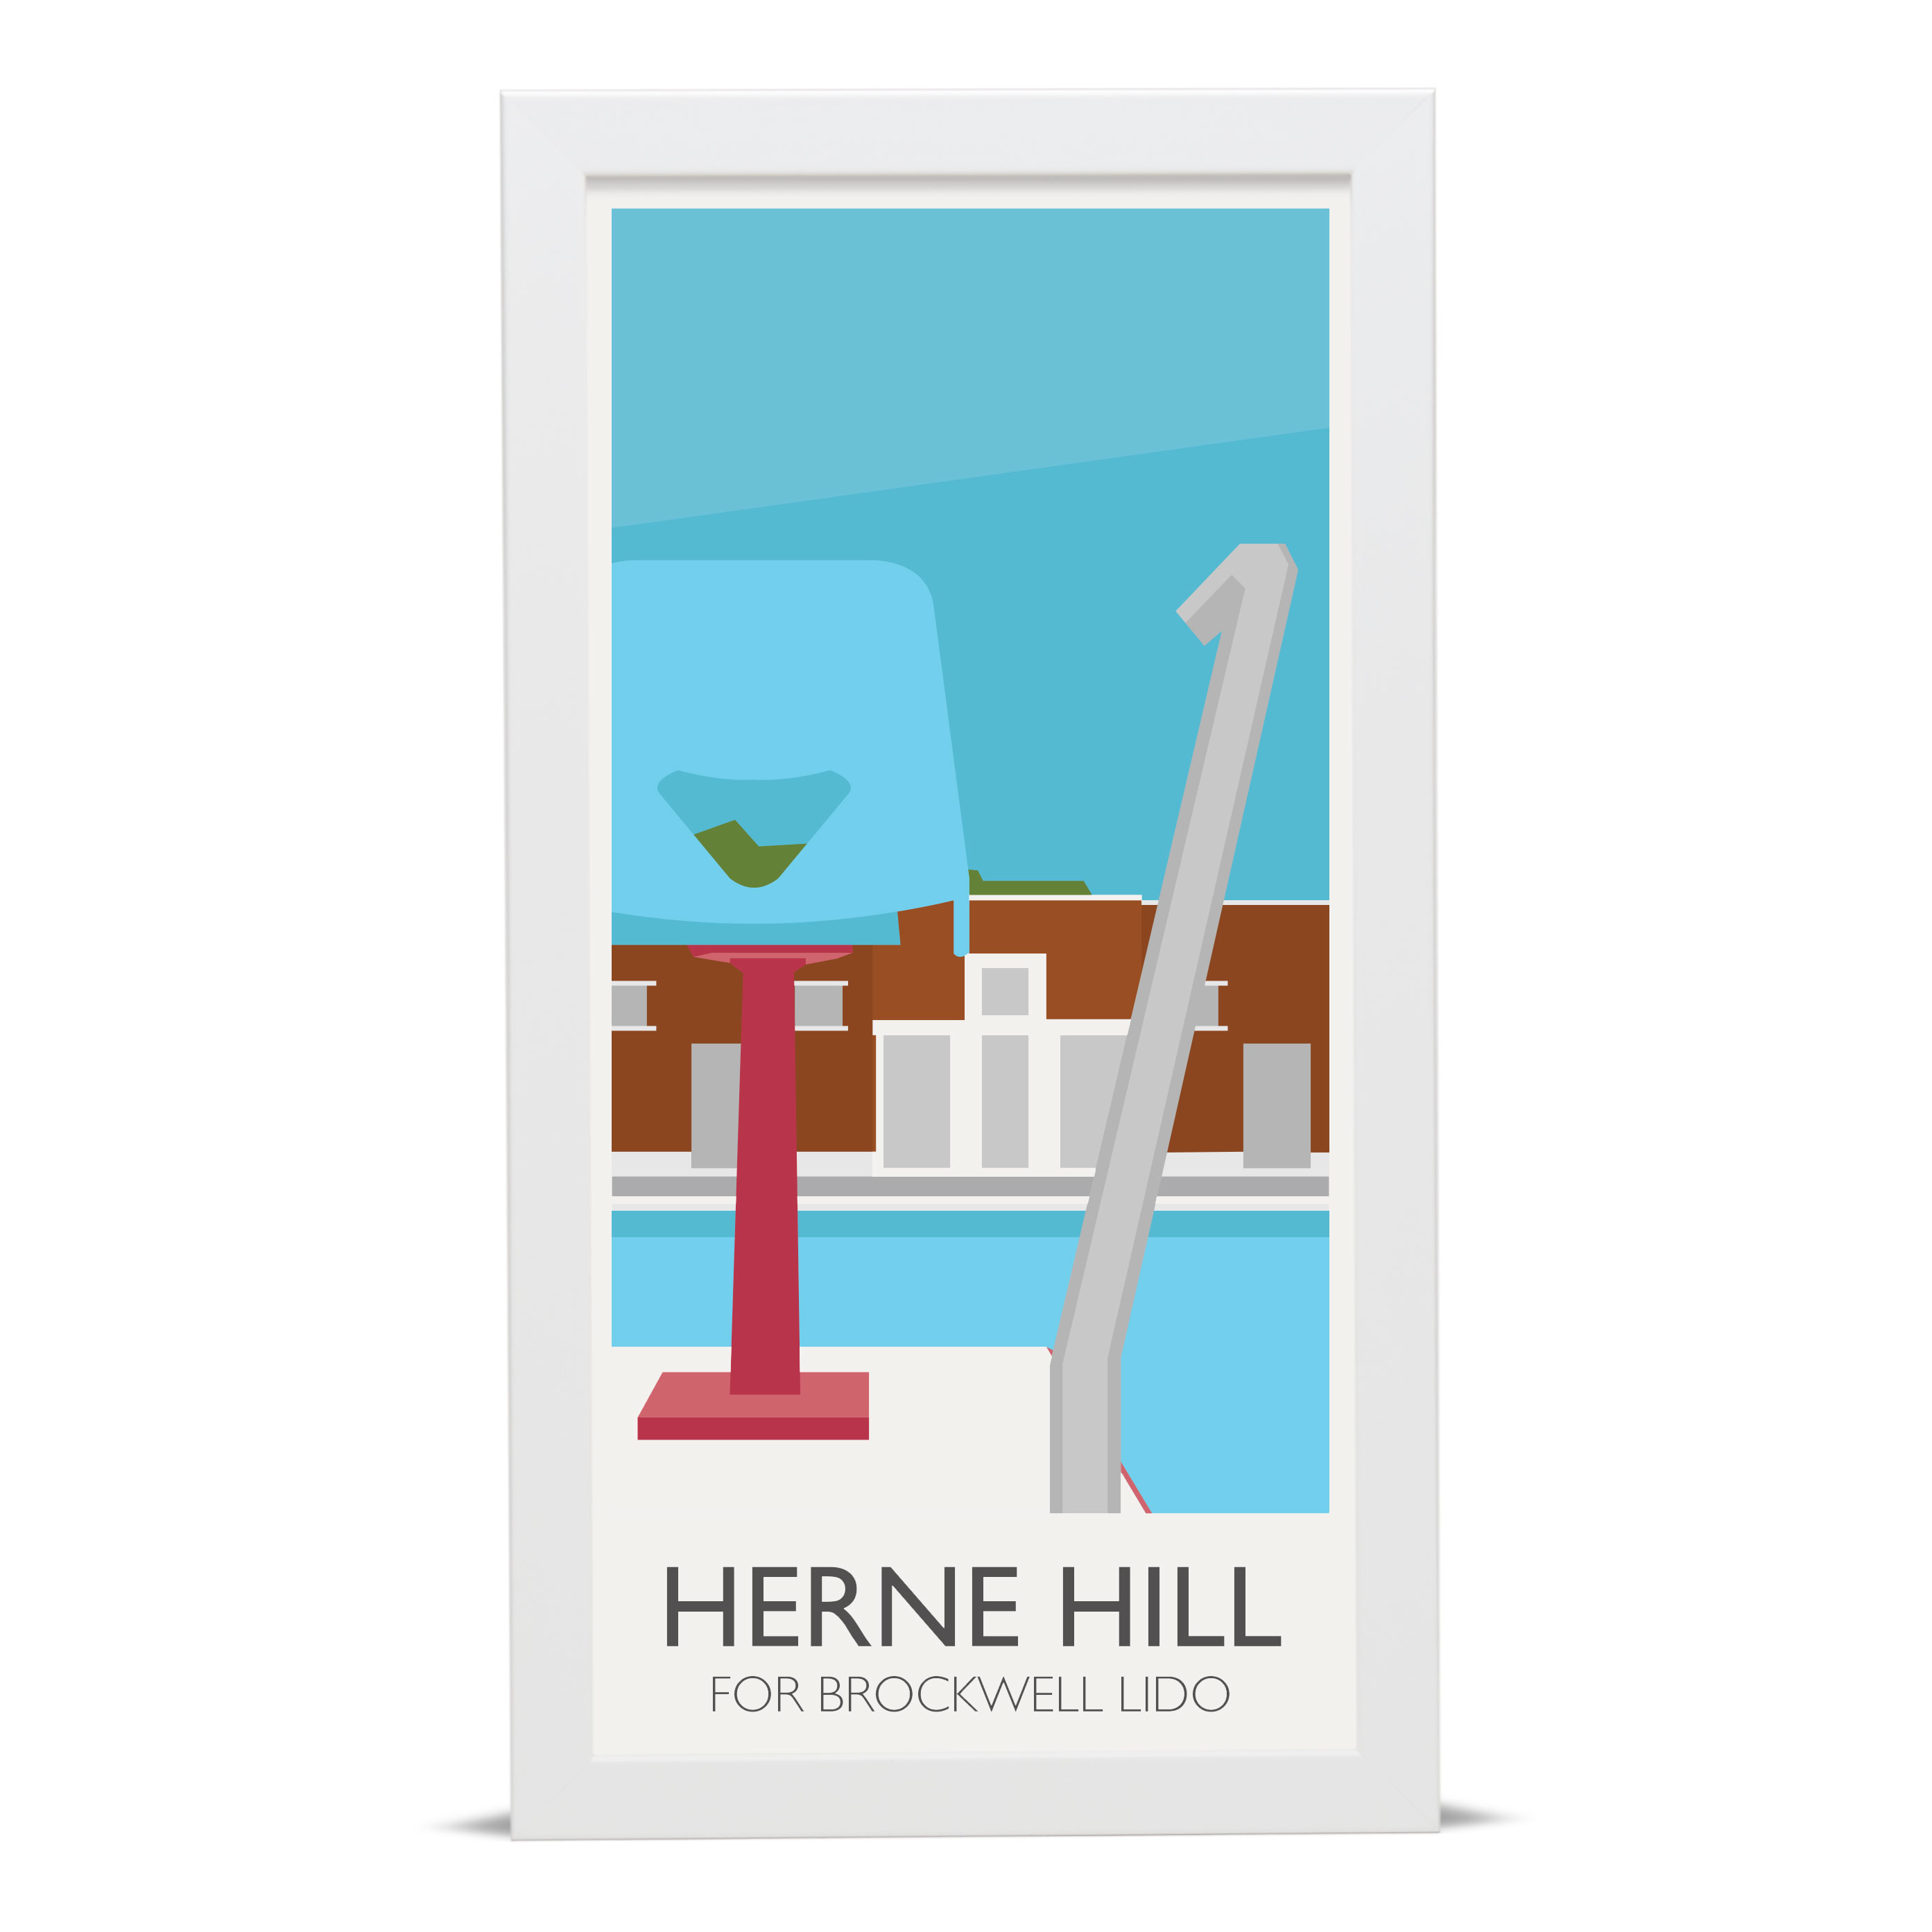 London's Lidos Journal Blog Post - Herne Hill for Brockwell Lido